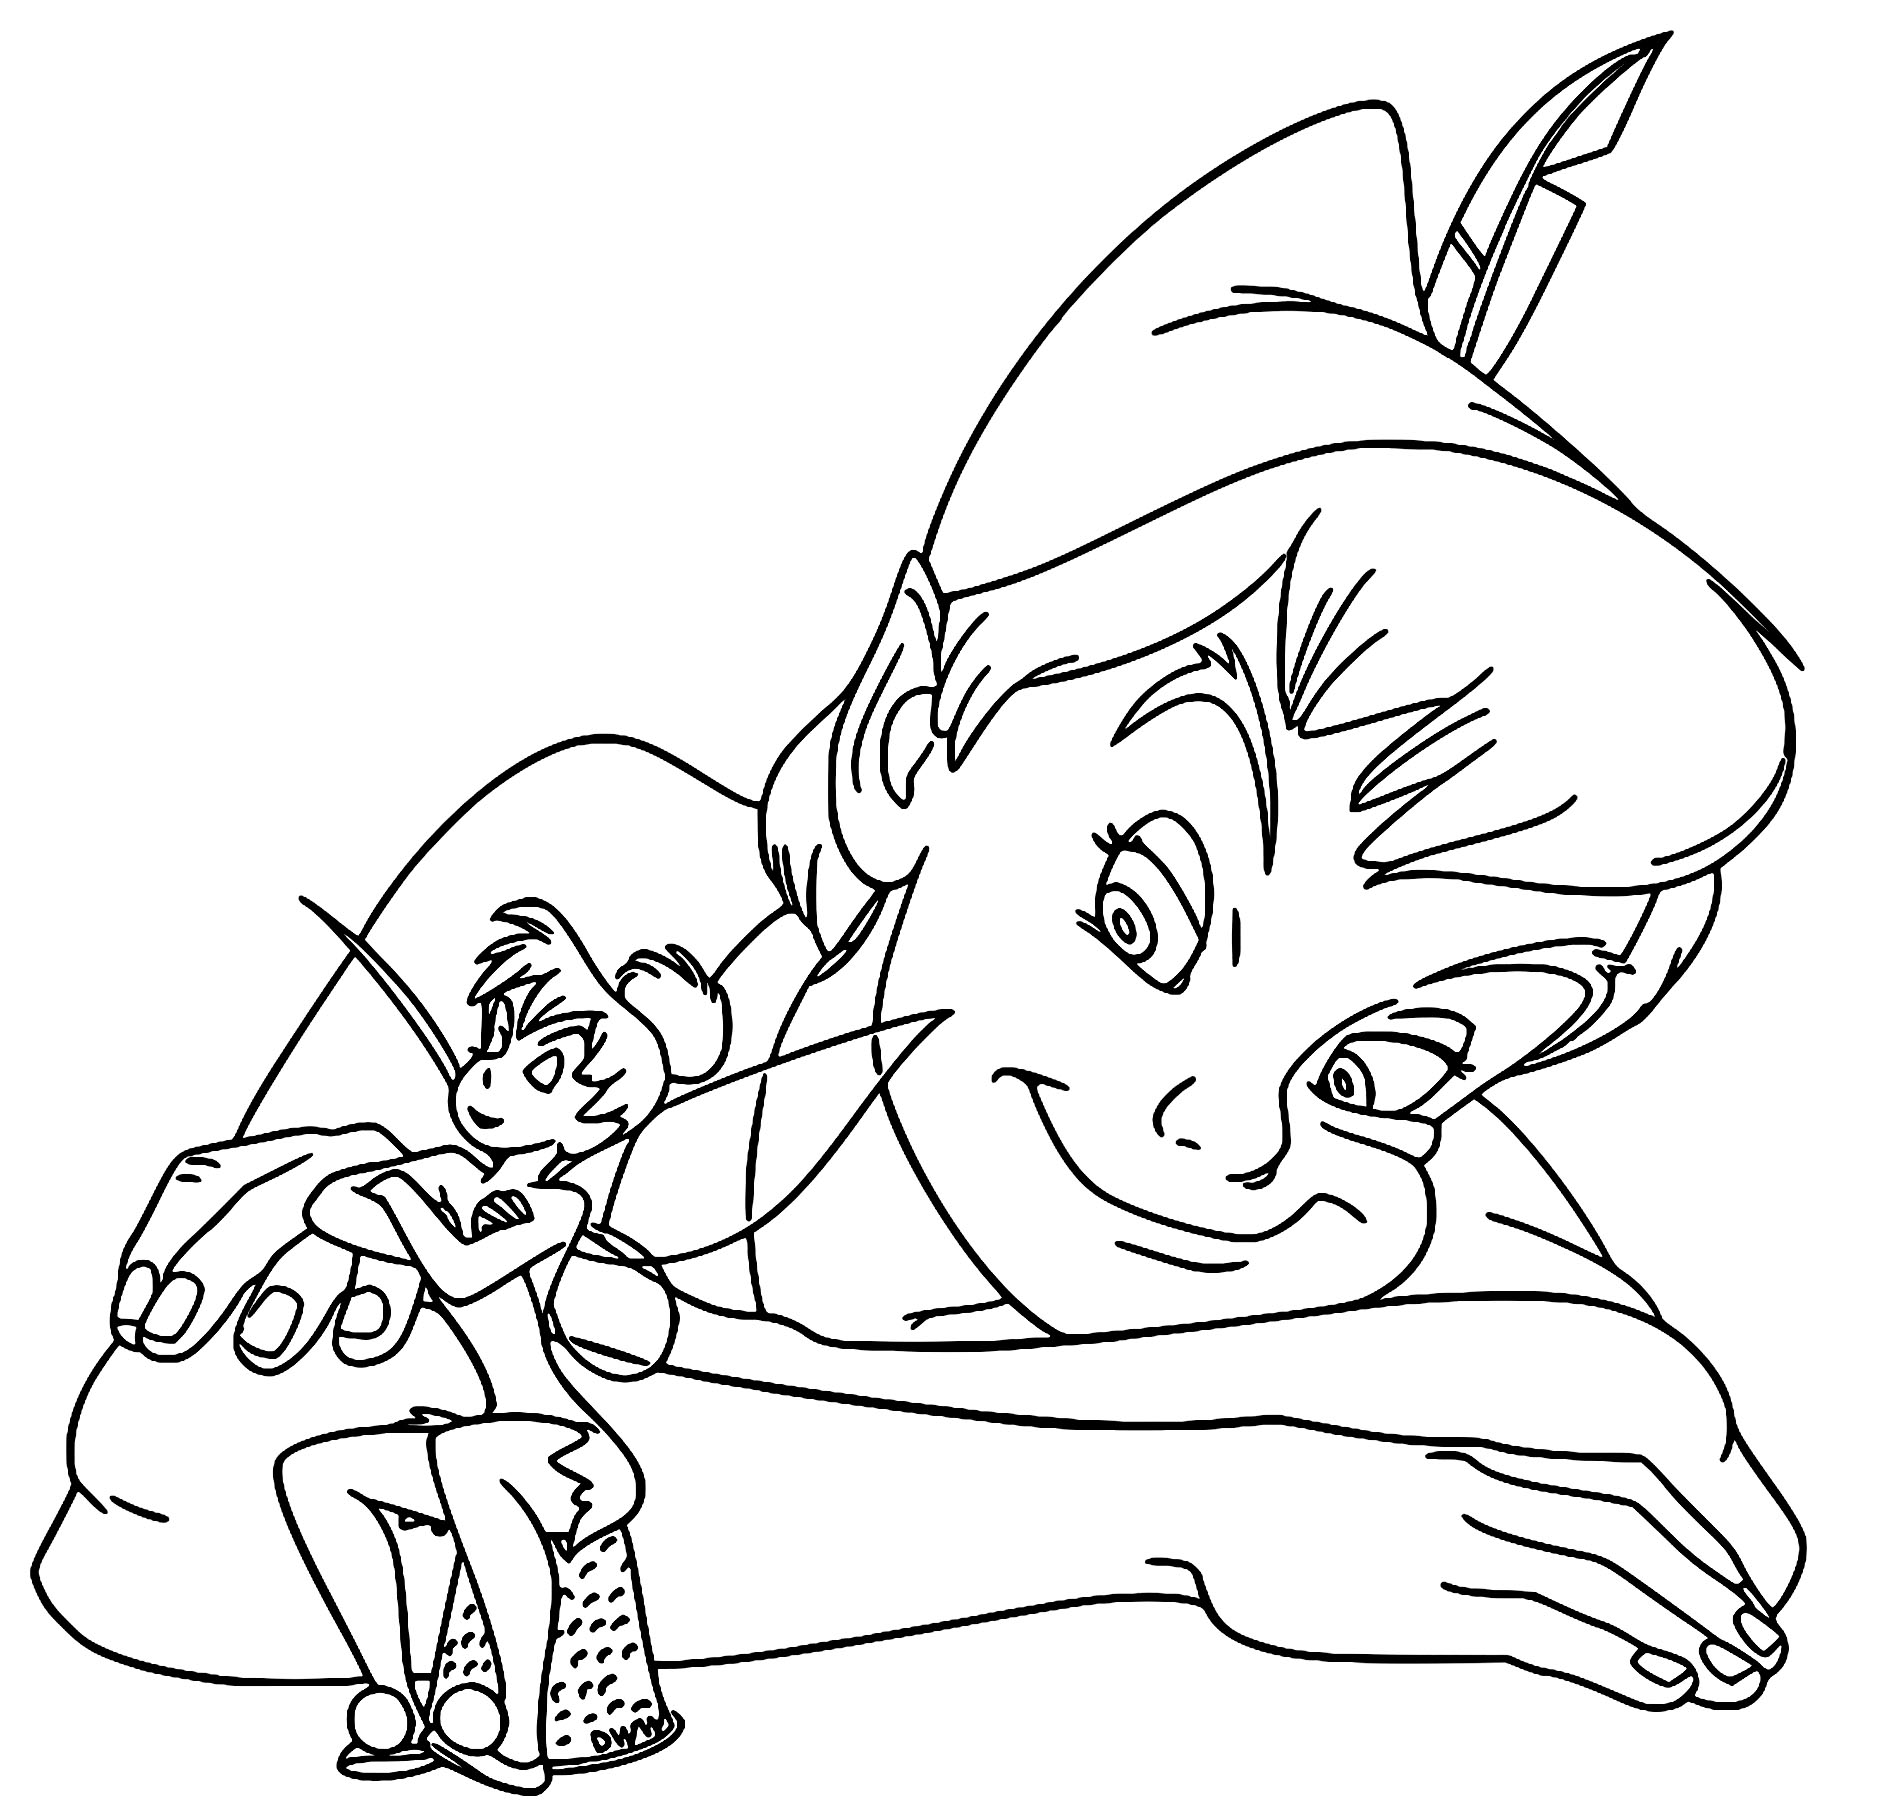 peter pan tinker bell coloring pages - Peter Pan Mermaids Coloring Pages